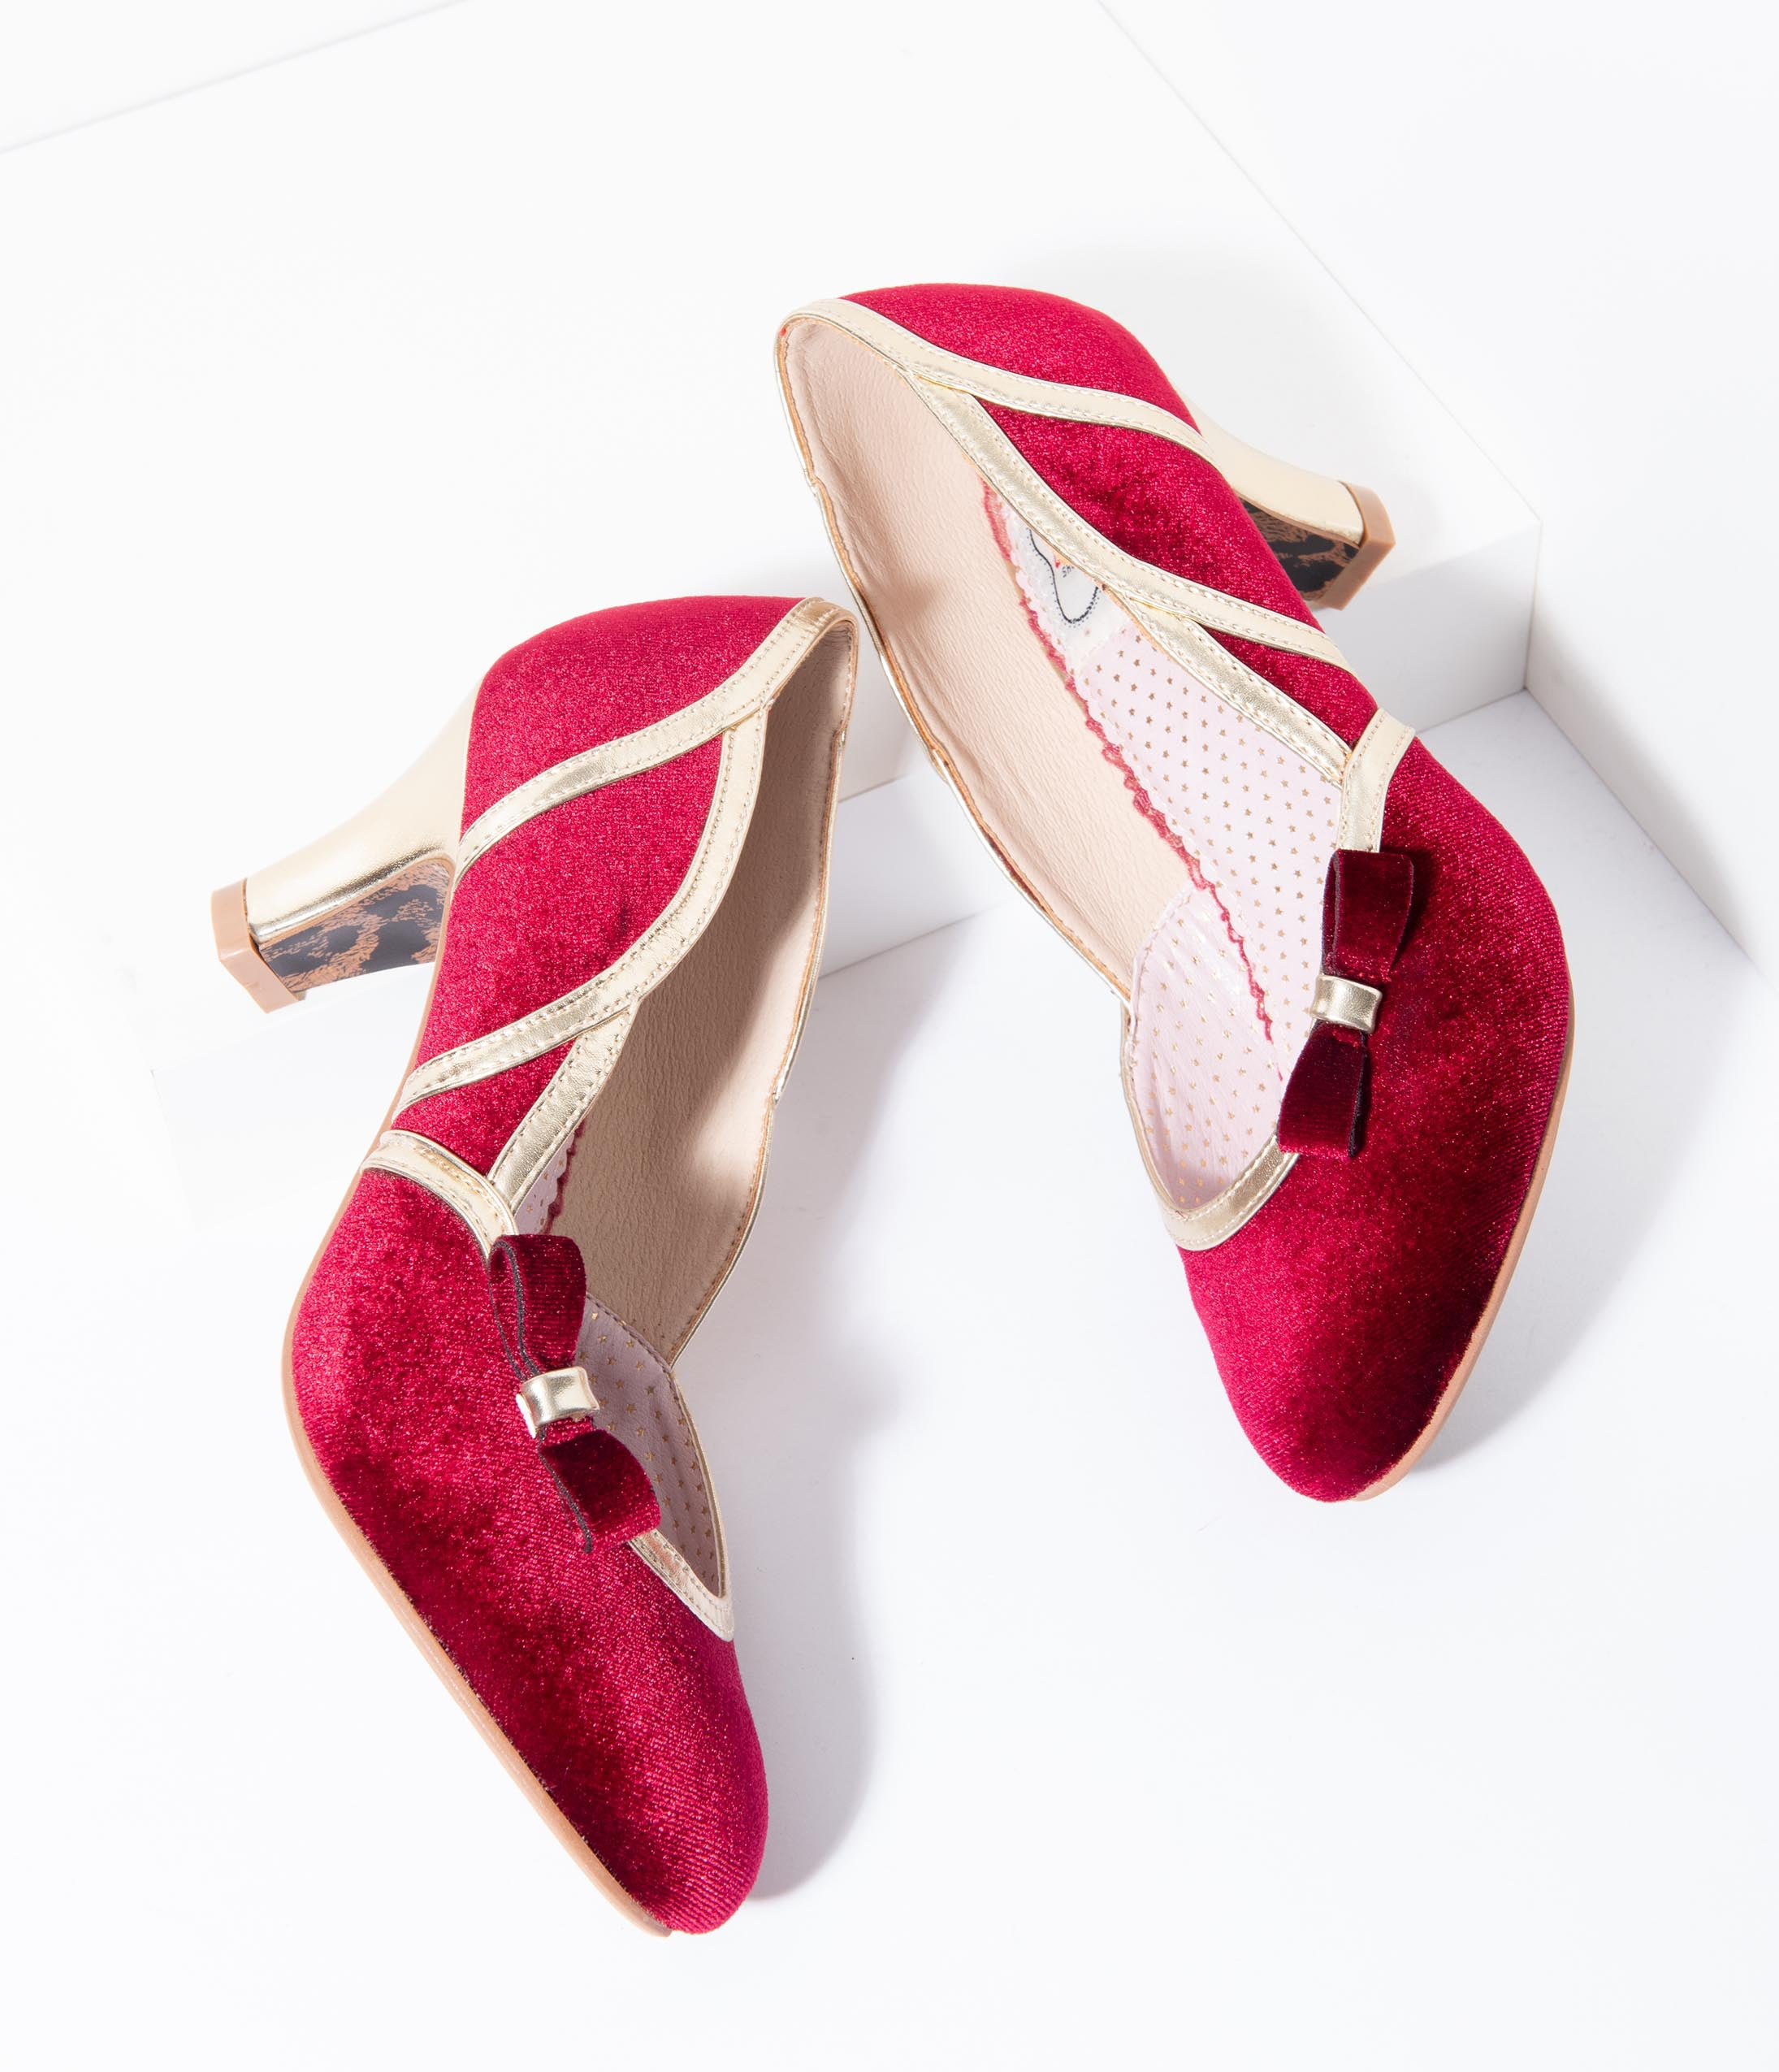 History of Roaring 20s Shoes Bettie Page 1950S Style Red Suede  Gold Trim Camille Heels $76.00 AT vintagedancer.com